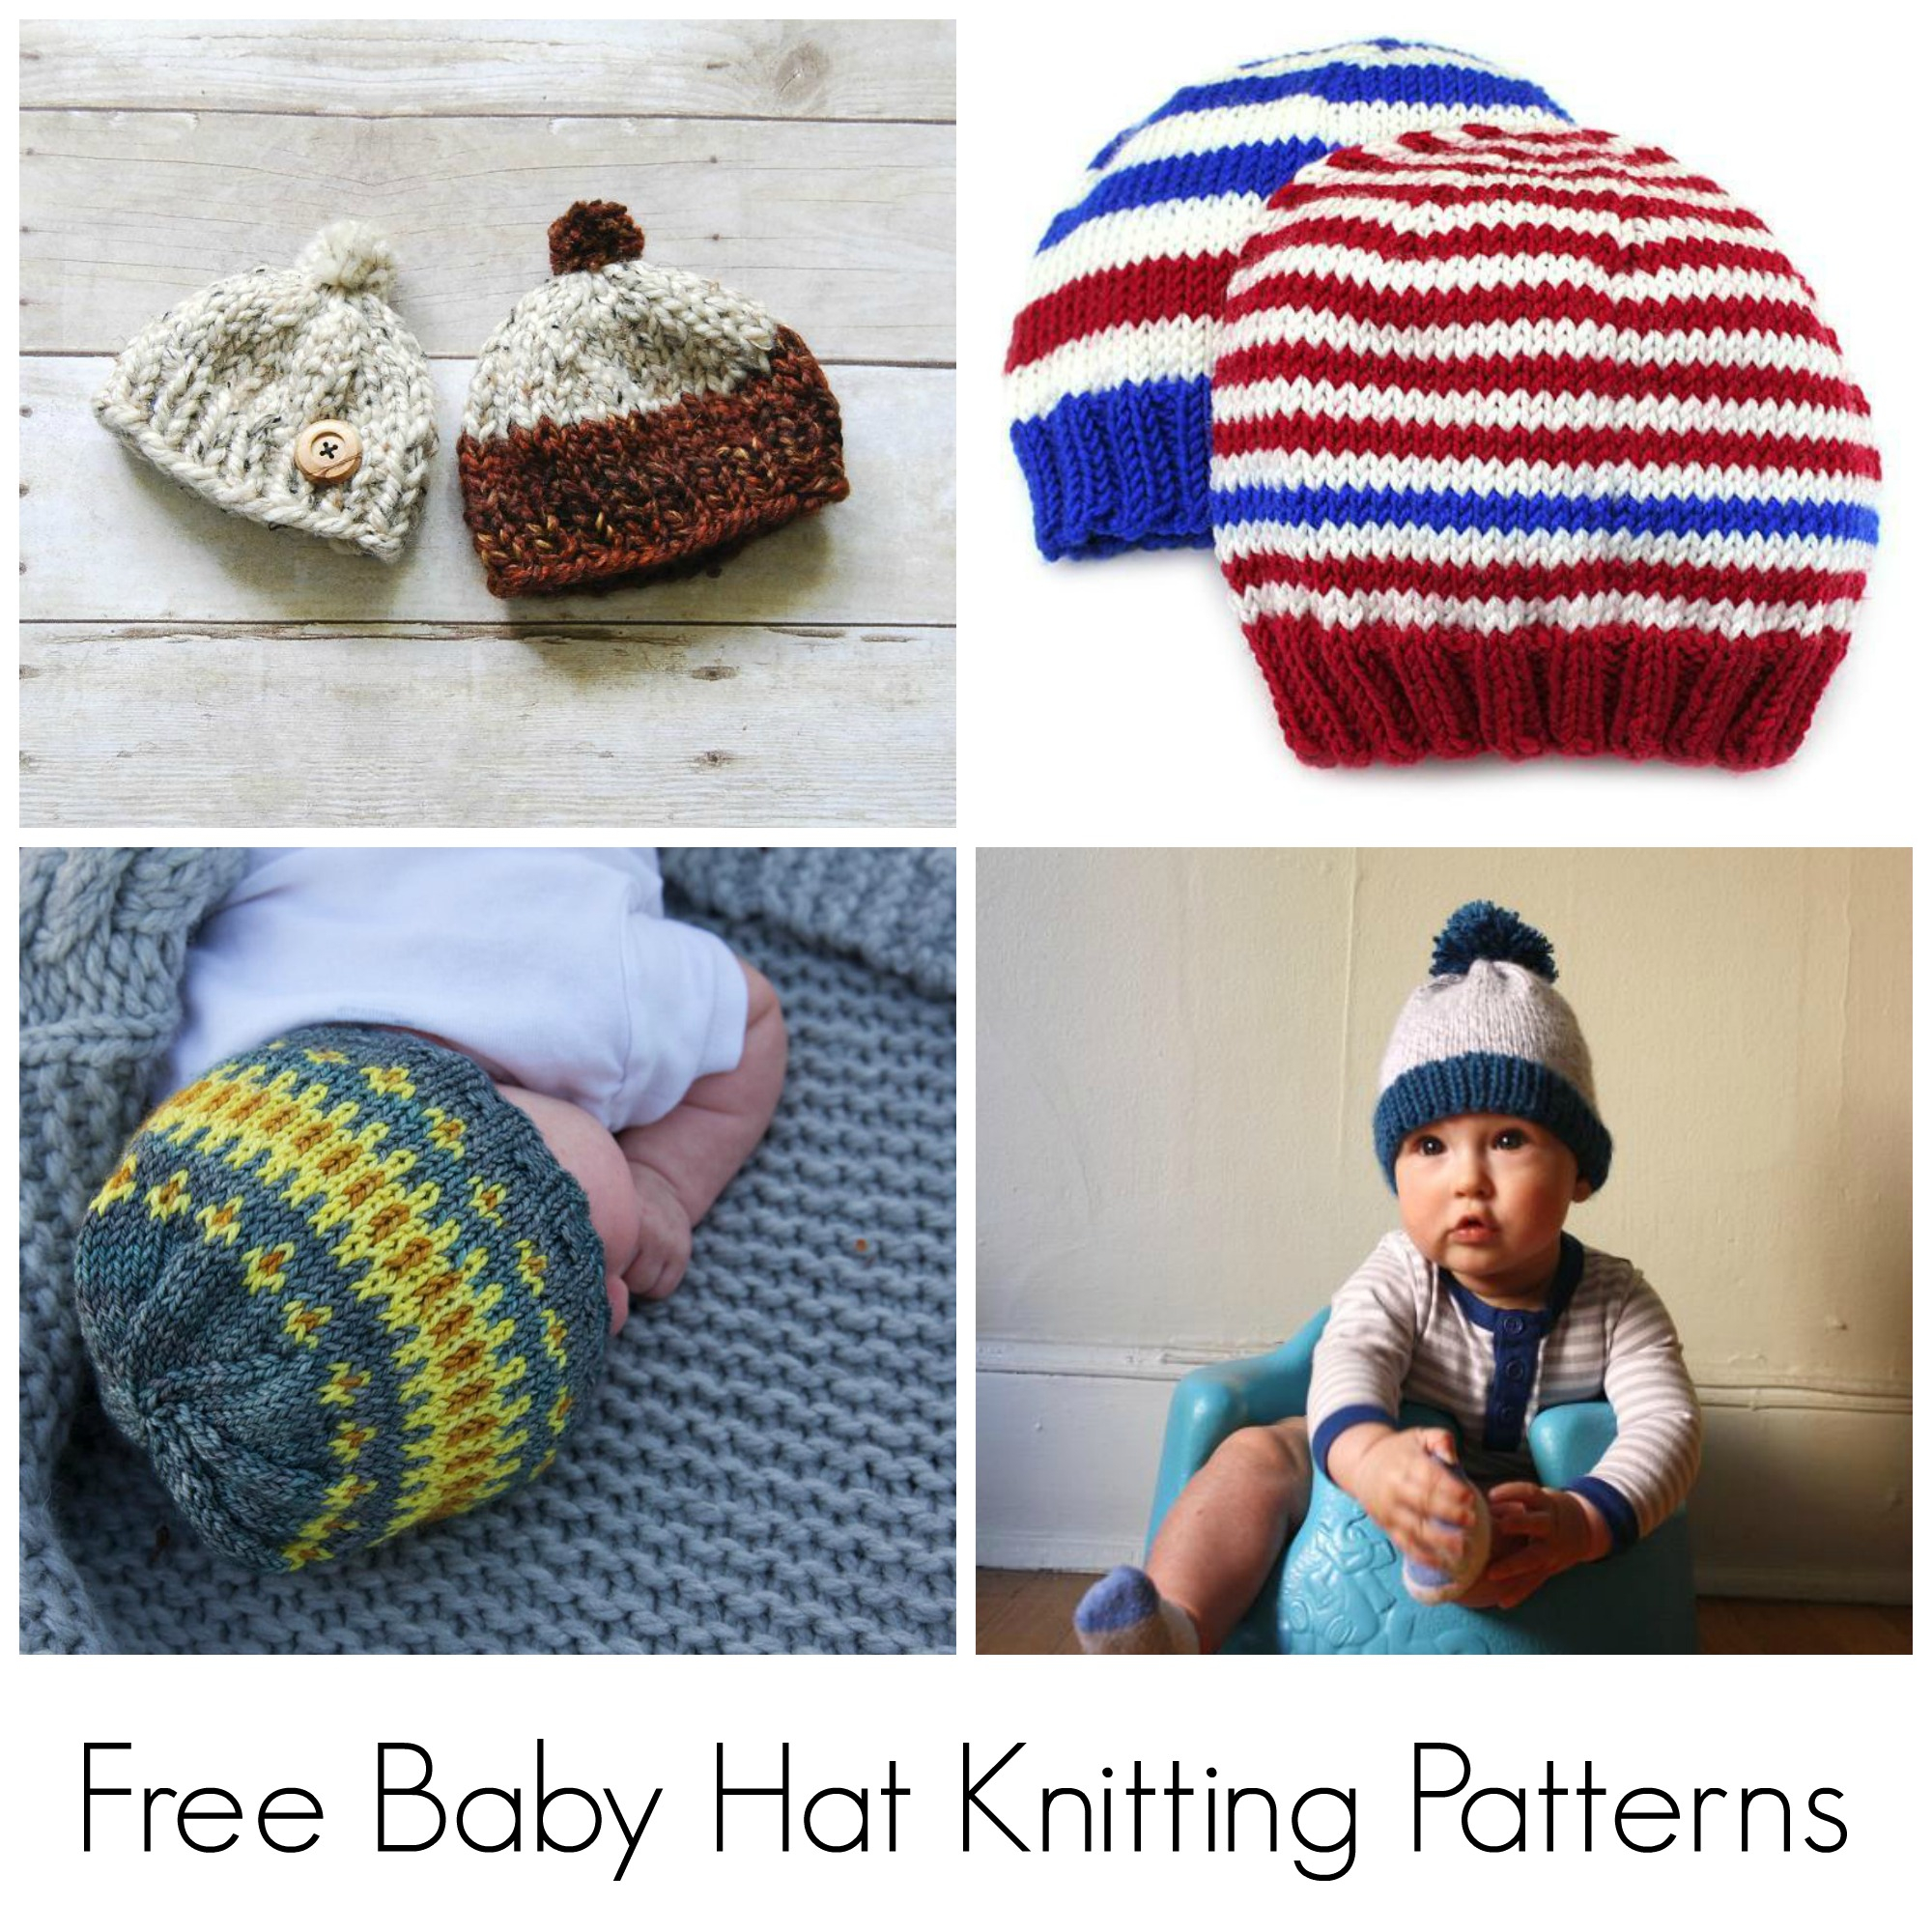 Baby Hat Patterns To Knit 10 Free Knitting Patterns For Ba Hats On Craftsy